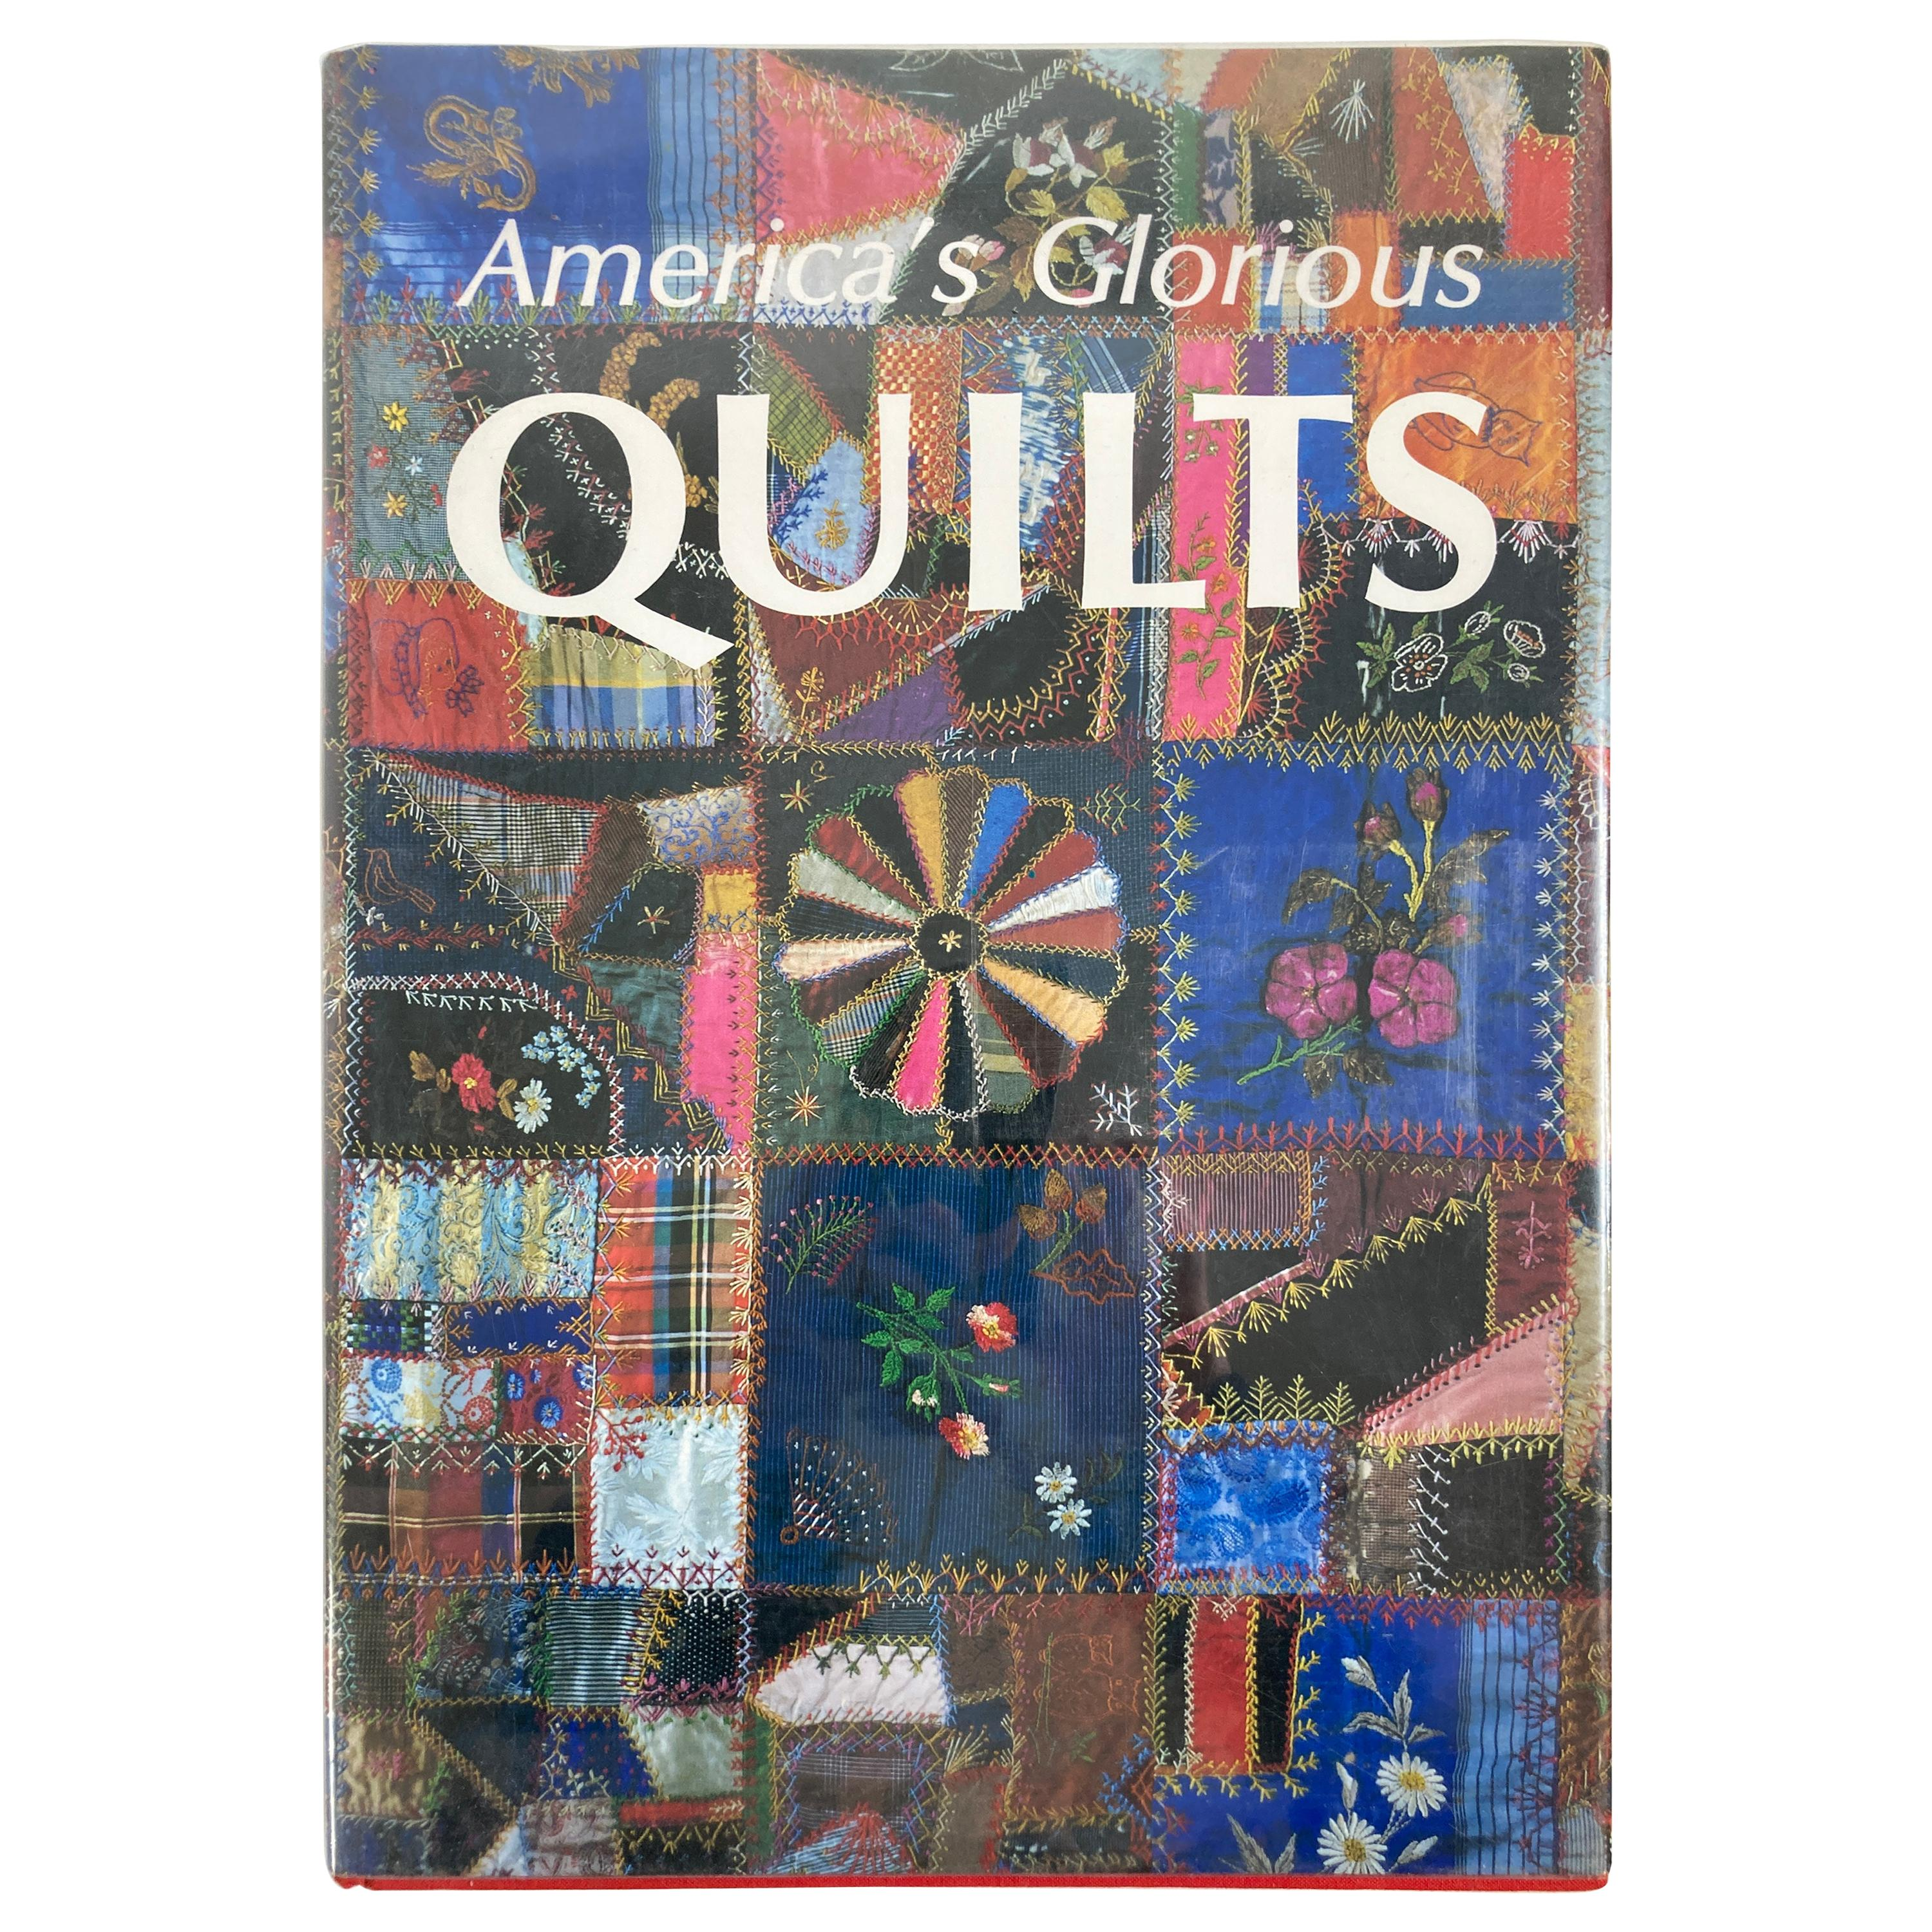 America's Glorious Quilts by Dennis Duke, Hardcover Book